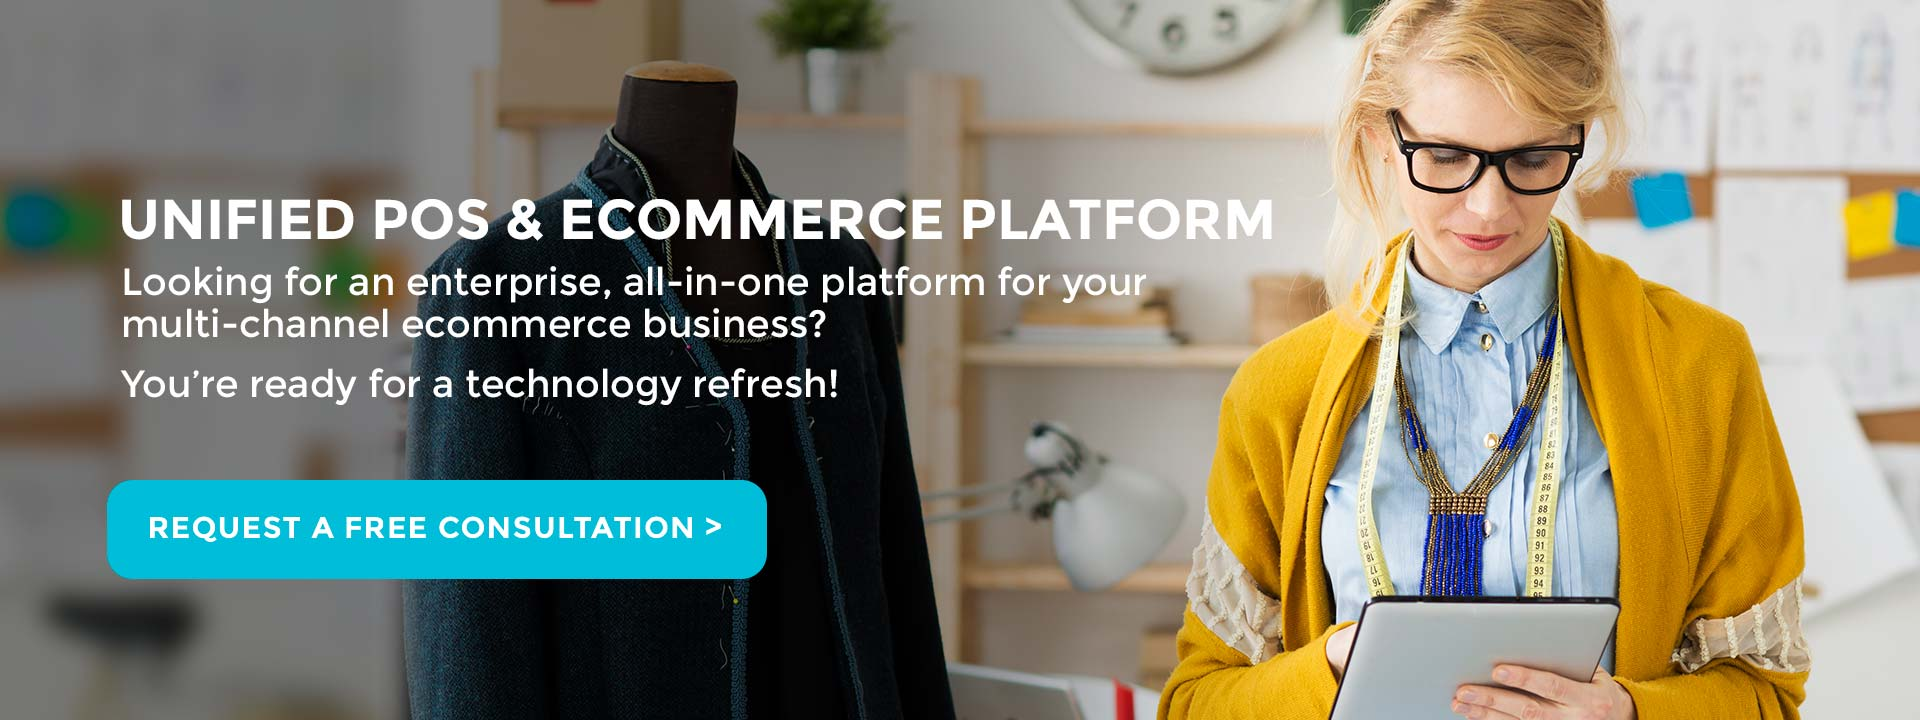 Omni Channel Commerce is THE Unified POS & Ecommerce Platform.